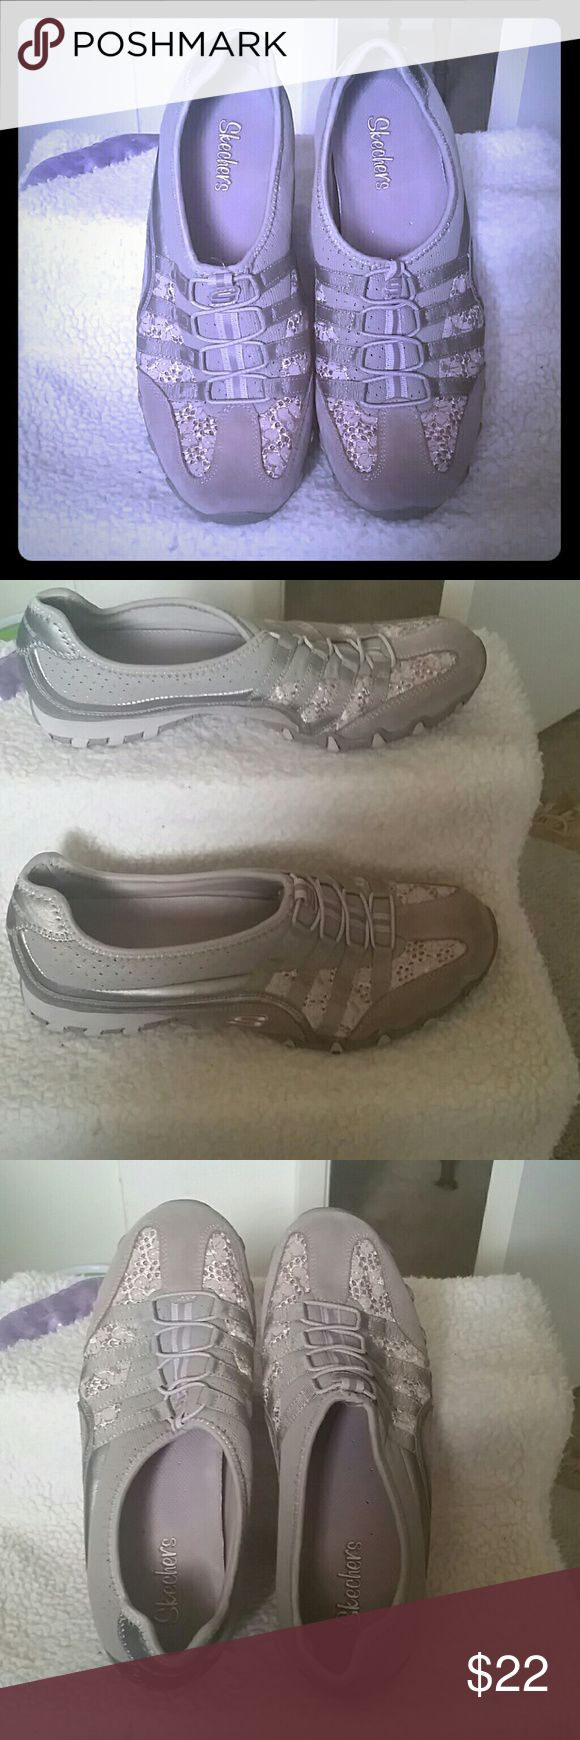 Skecher  Shoes Only worn twice b/c they are a little too snug on my feet.  Still in excellent condition!!  Very clean & no marks or scuffs. Skechers Shoes